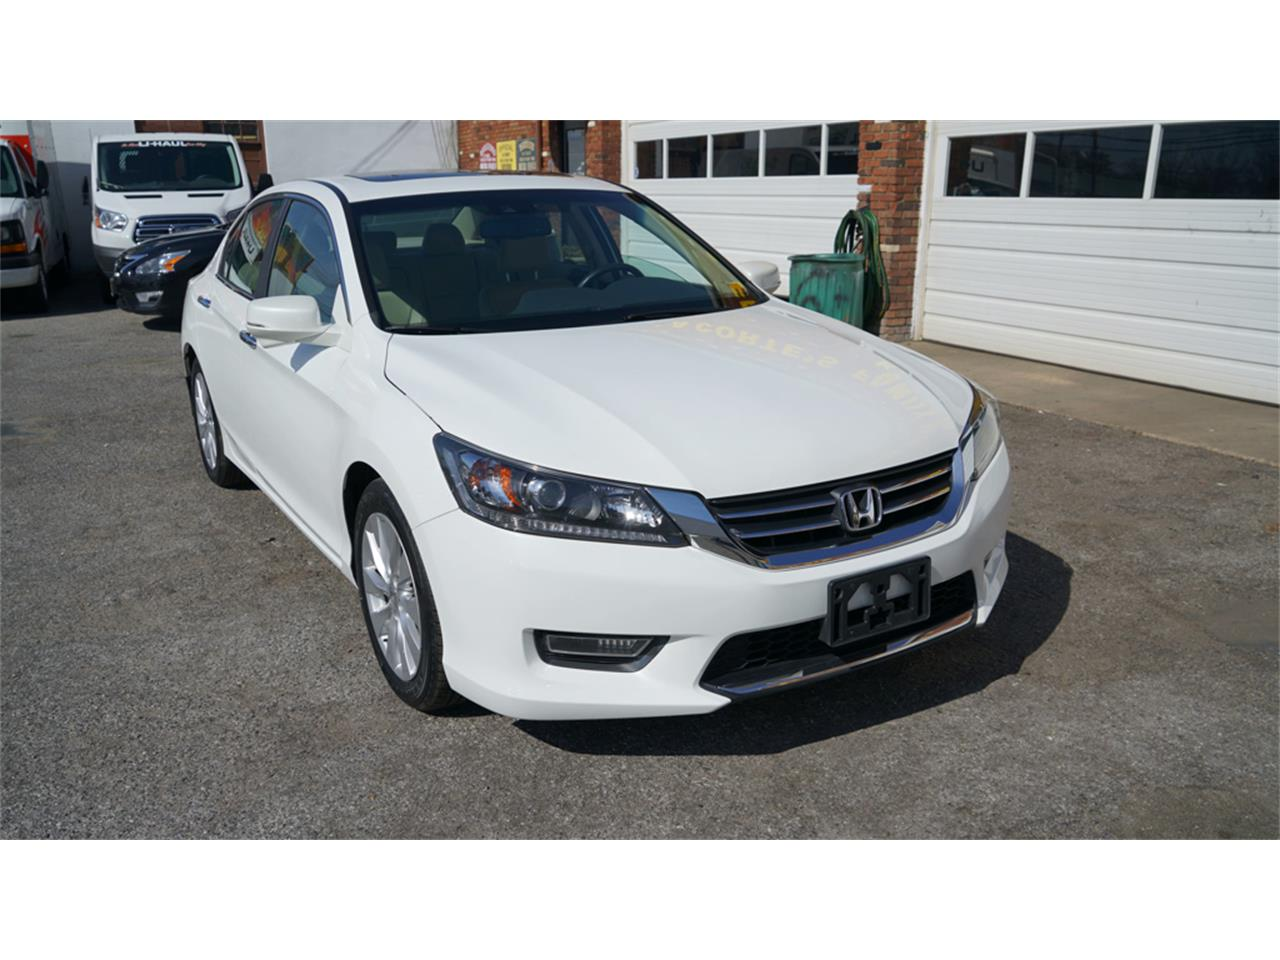 Honda Accord 2013 For Sale >> For Sale 2013 Honda Accord In Old Bethpage New York